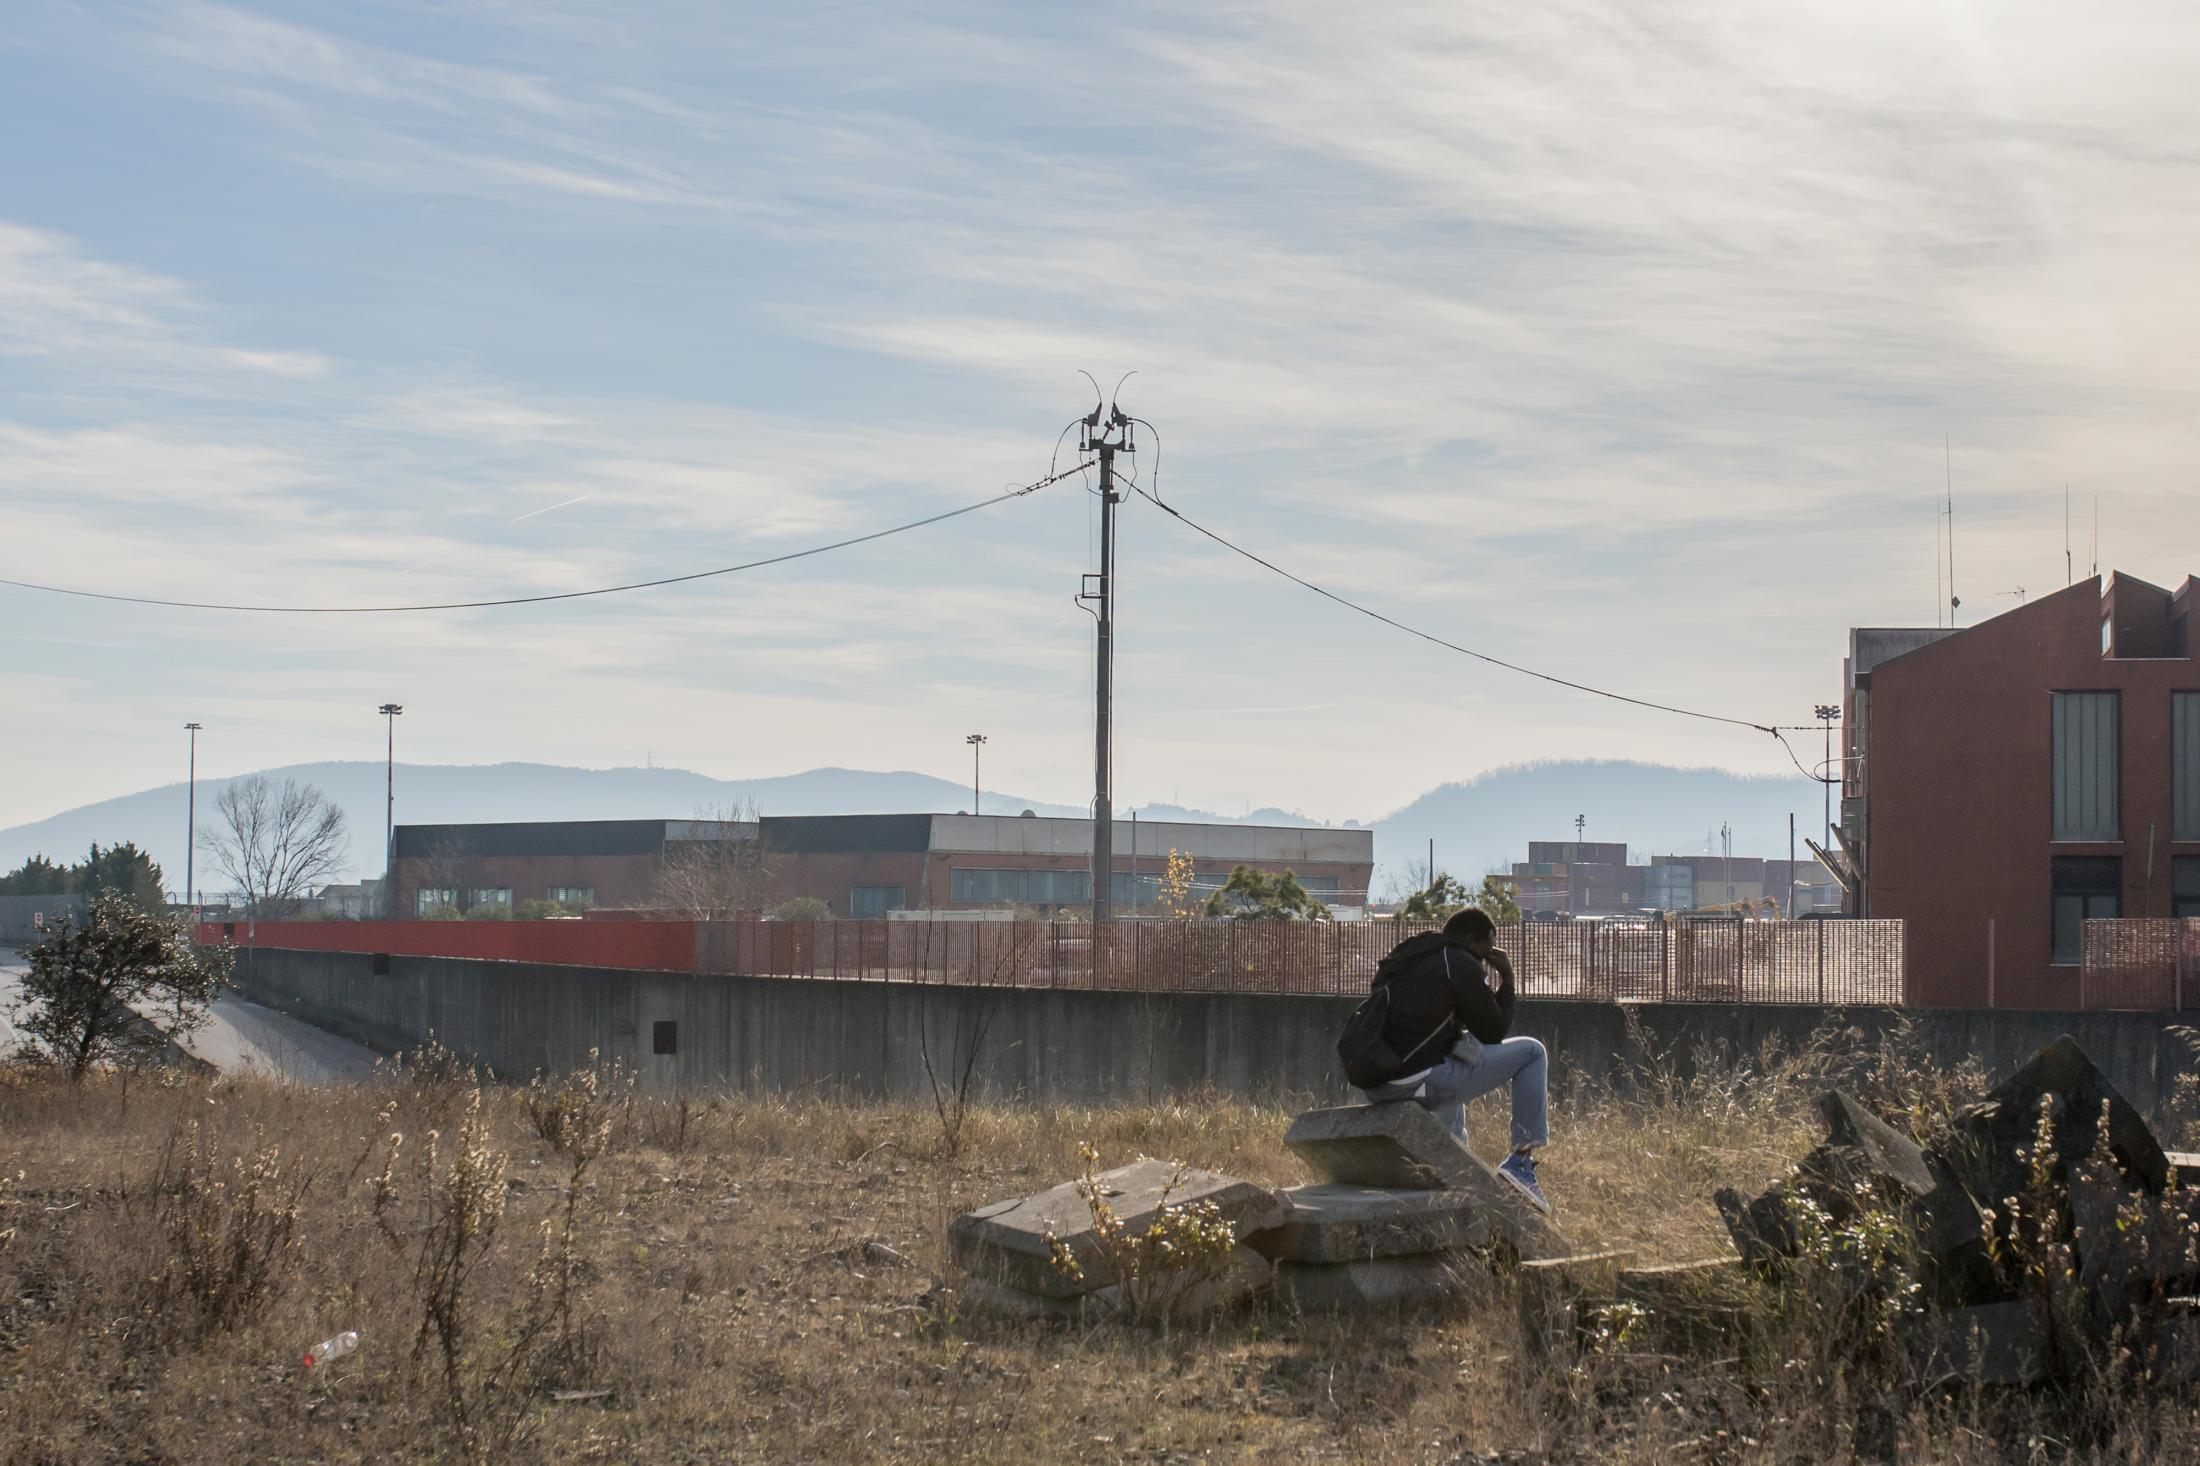 L oneliness and discouragement of a migrant beside the railway line (Italy)